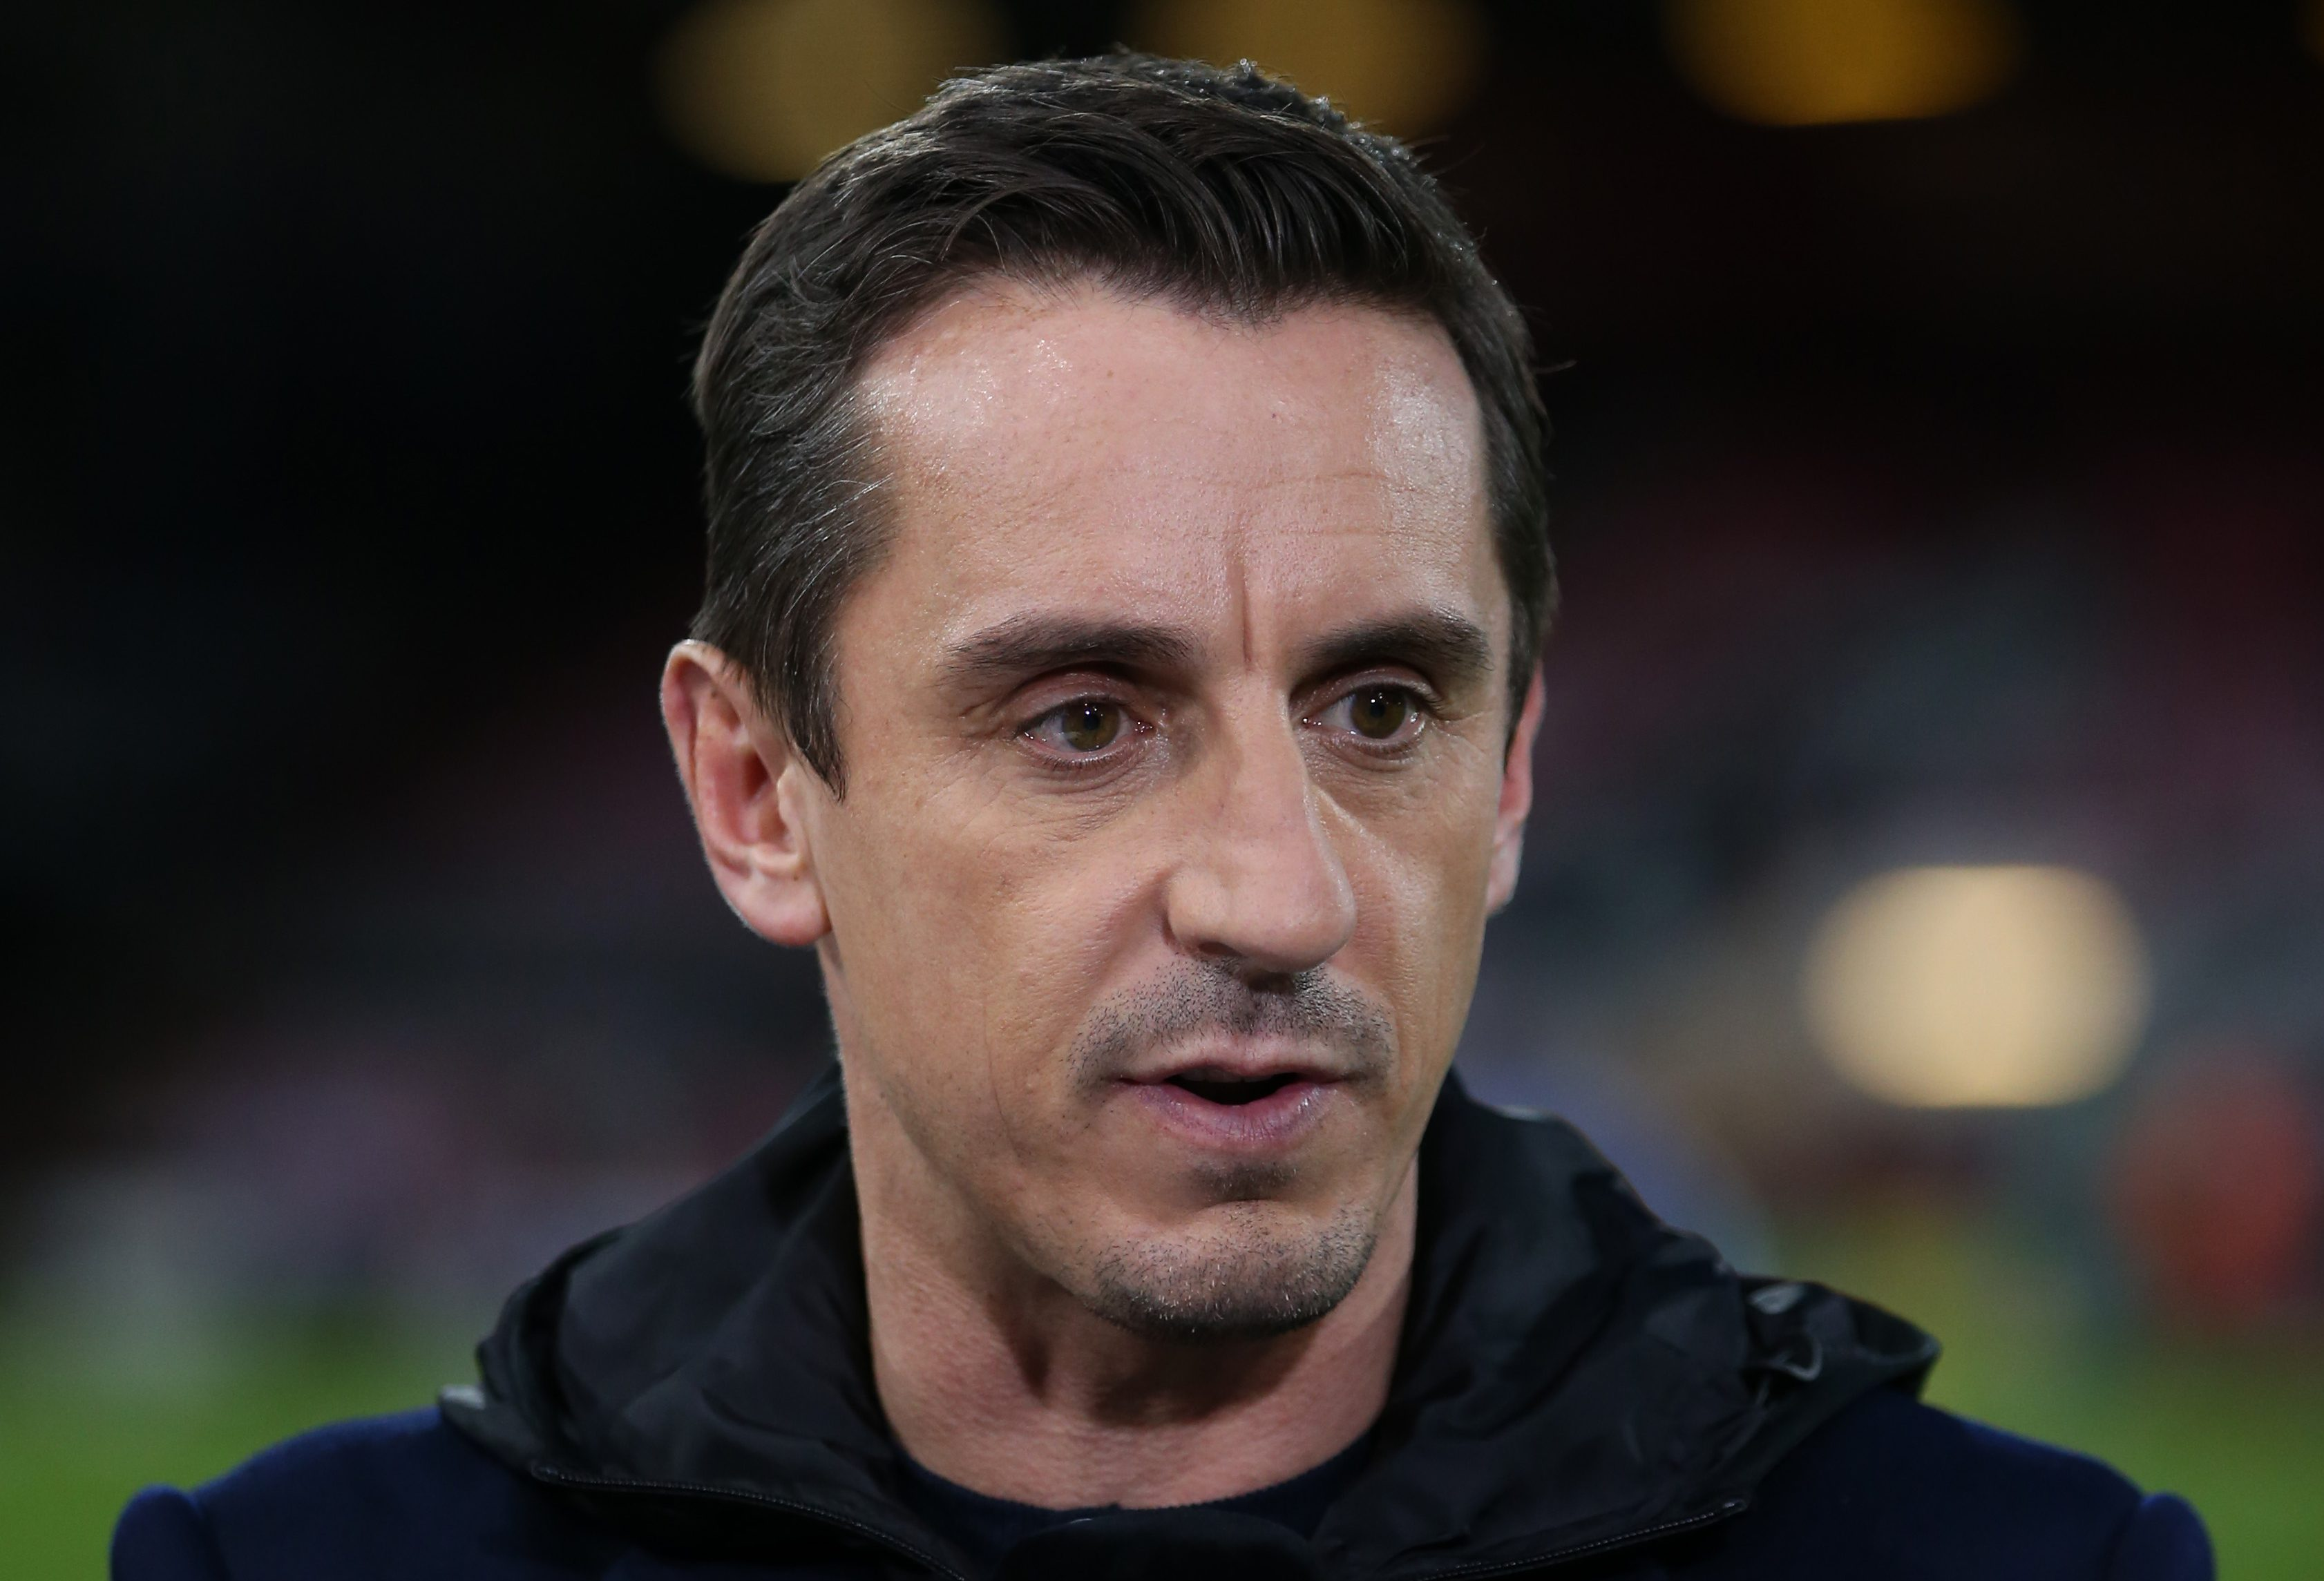 Gary Neville questions Liverpool's £75m transfer move for Virgil van Dijk